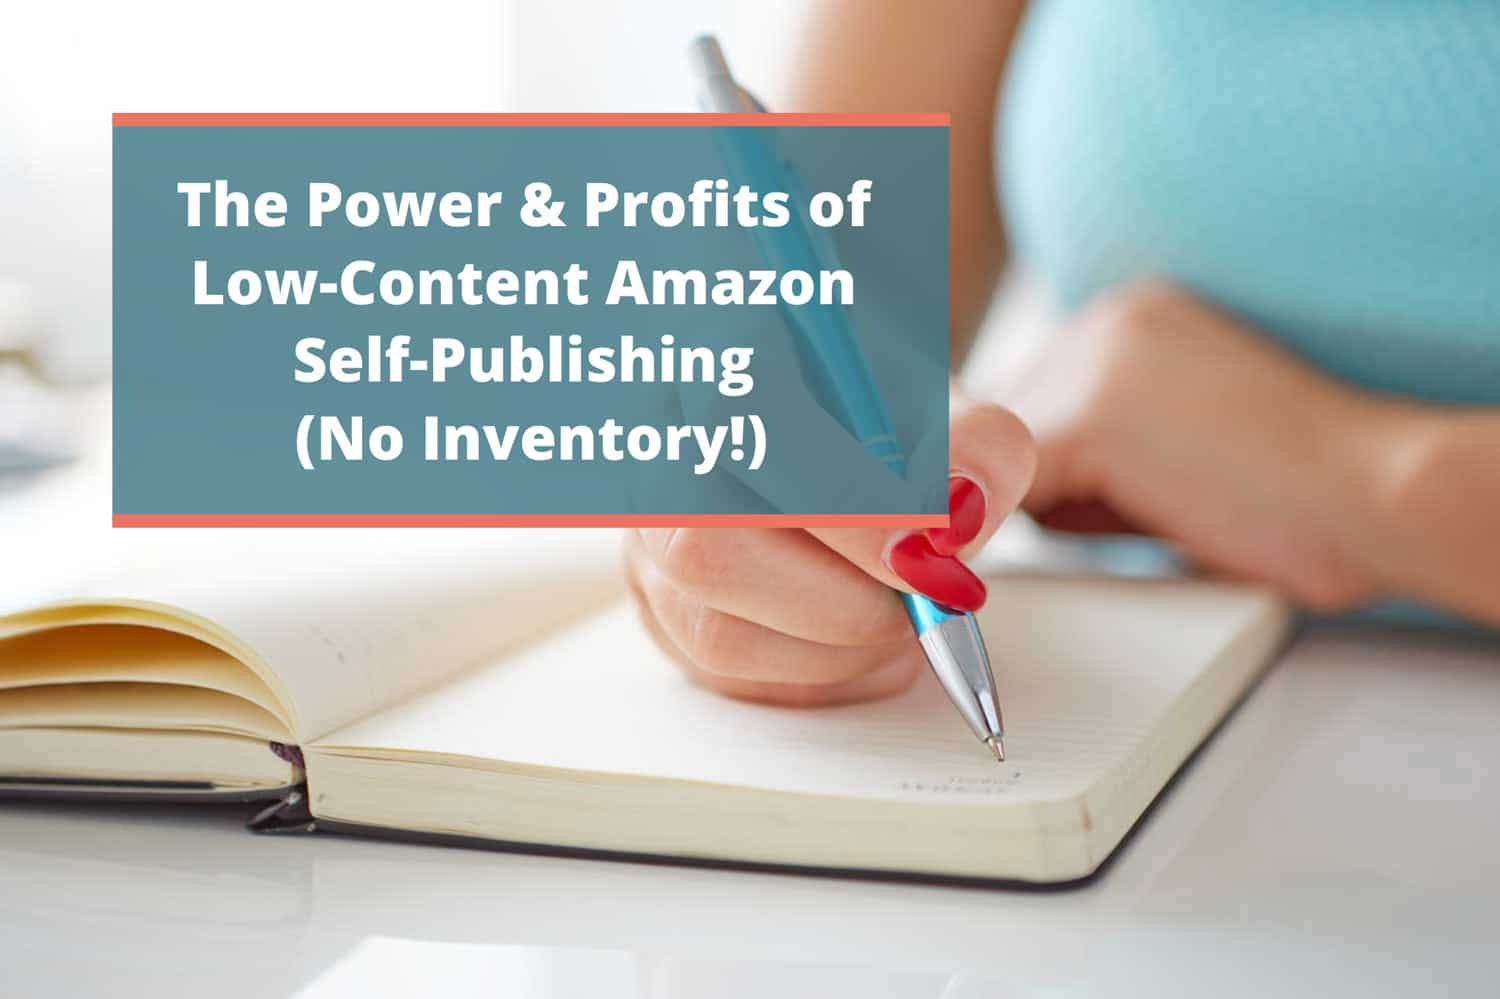 The Power & Profits of Low-Content Amazon Self-Publishing (No Inventory!)